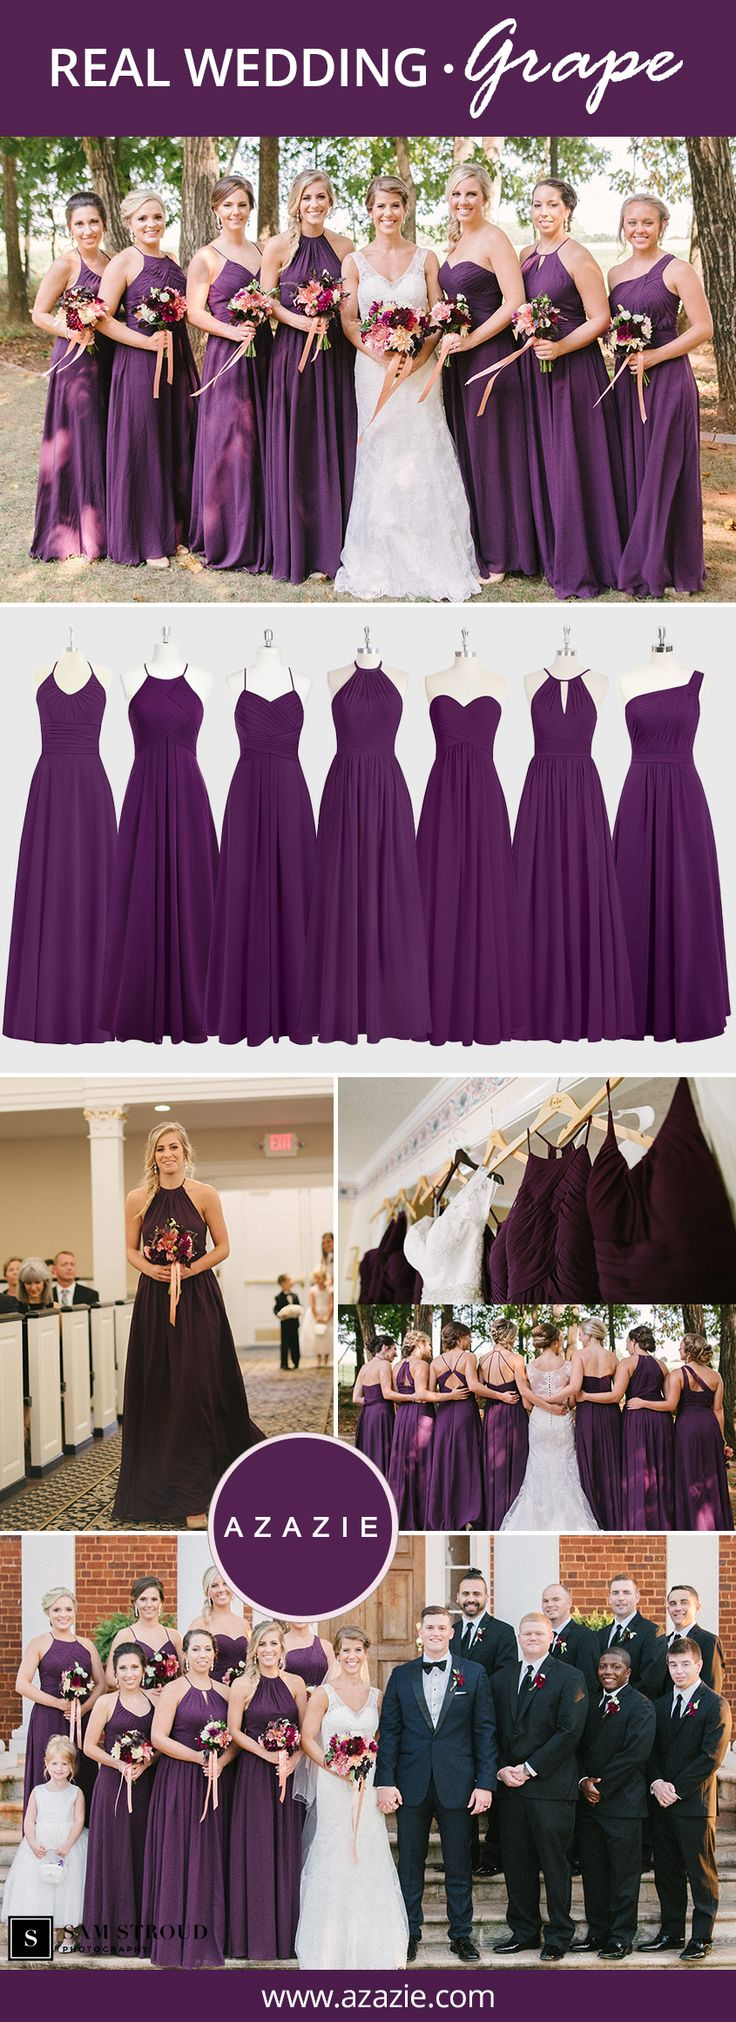 Pin by Karen on wedding: bridesmaid dress | Pinterest | Berry ...